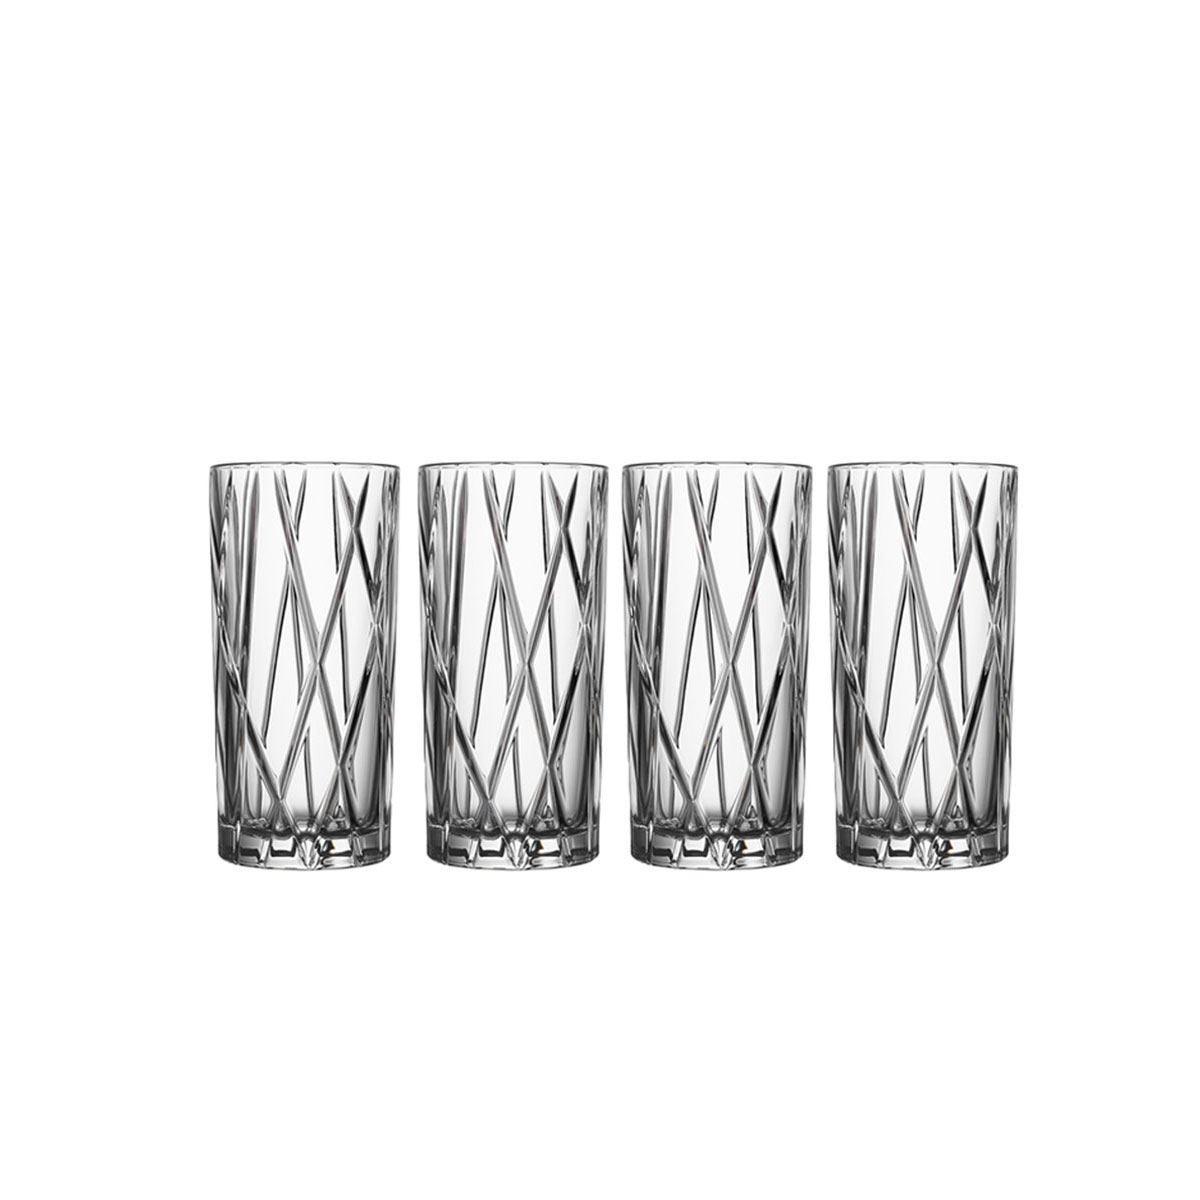 Orrefors Crystal, City Crystal Old Fashioned Tumbler Glass, Set of Four